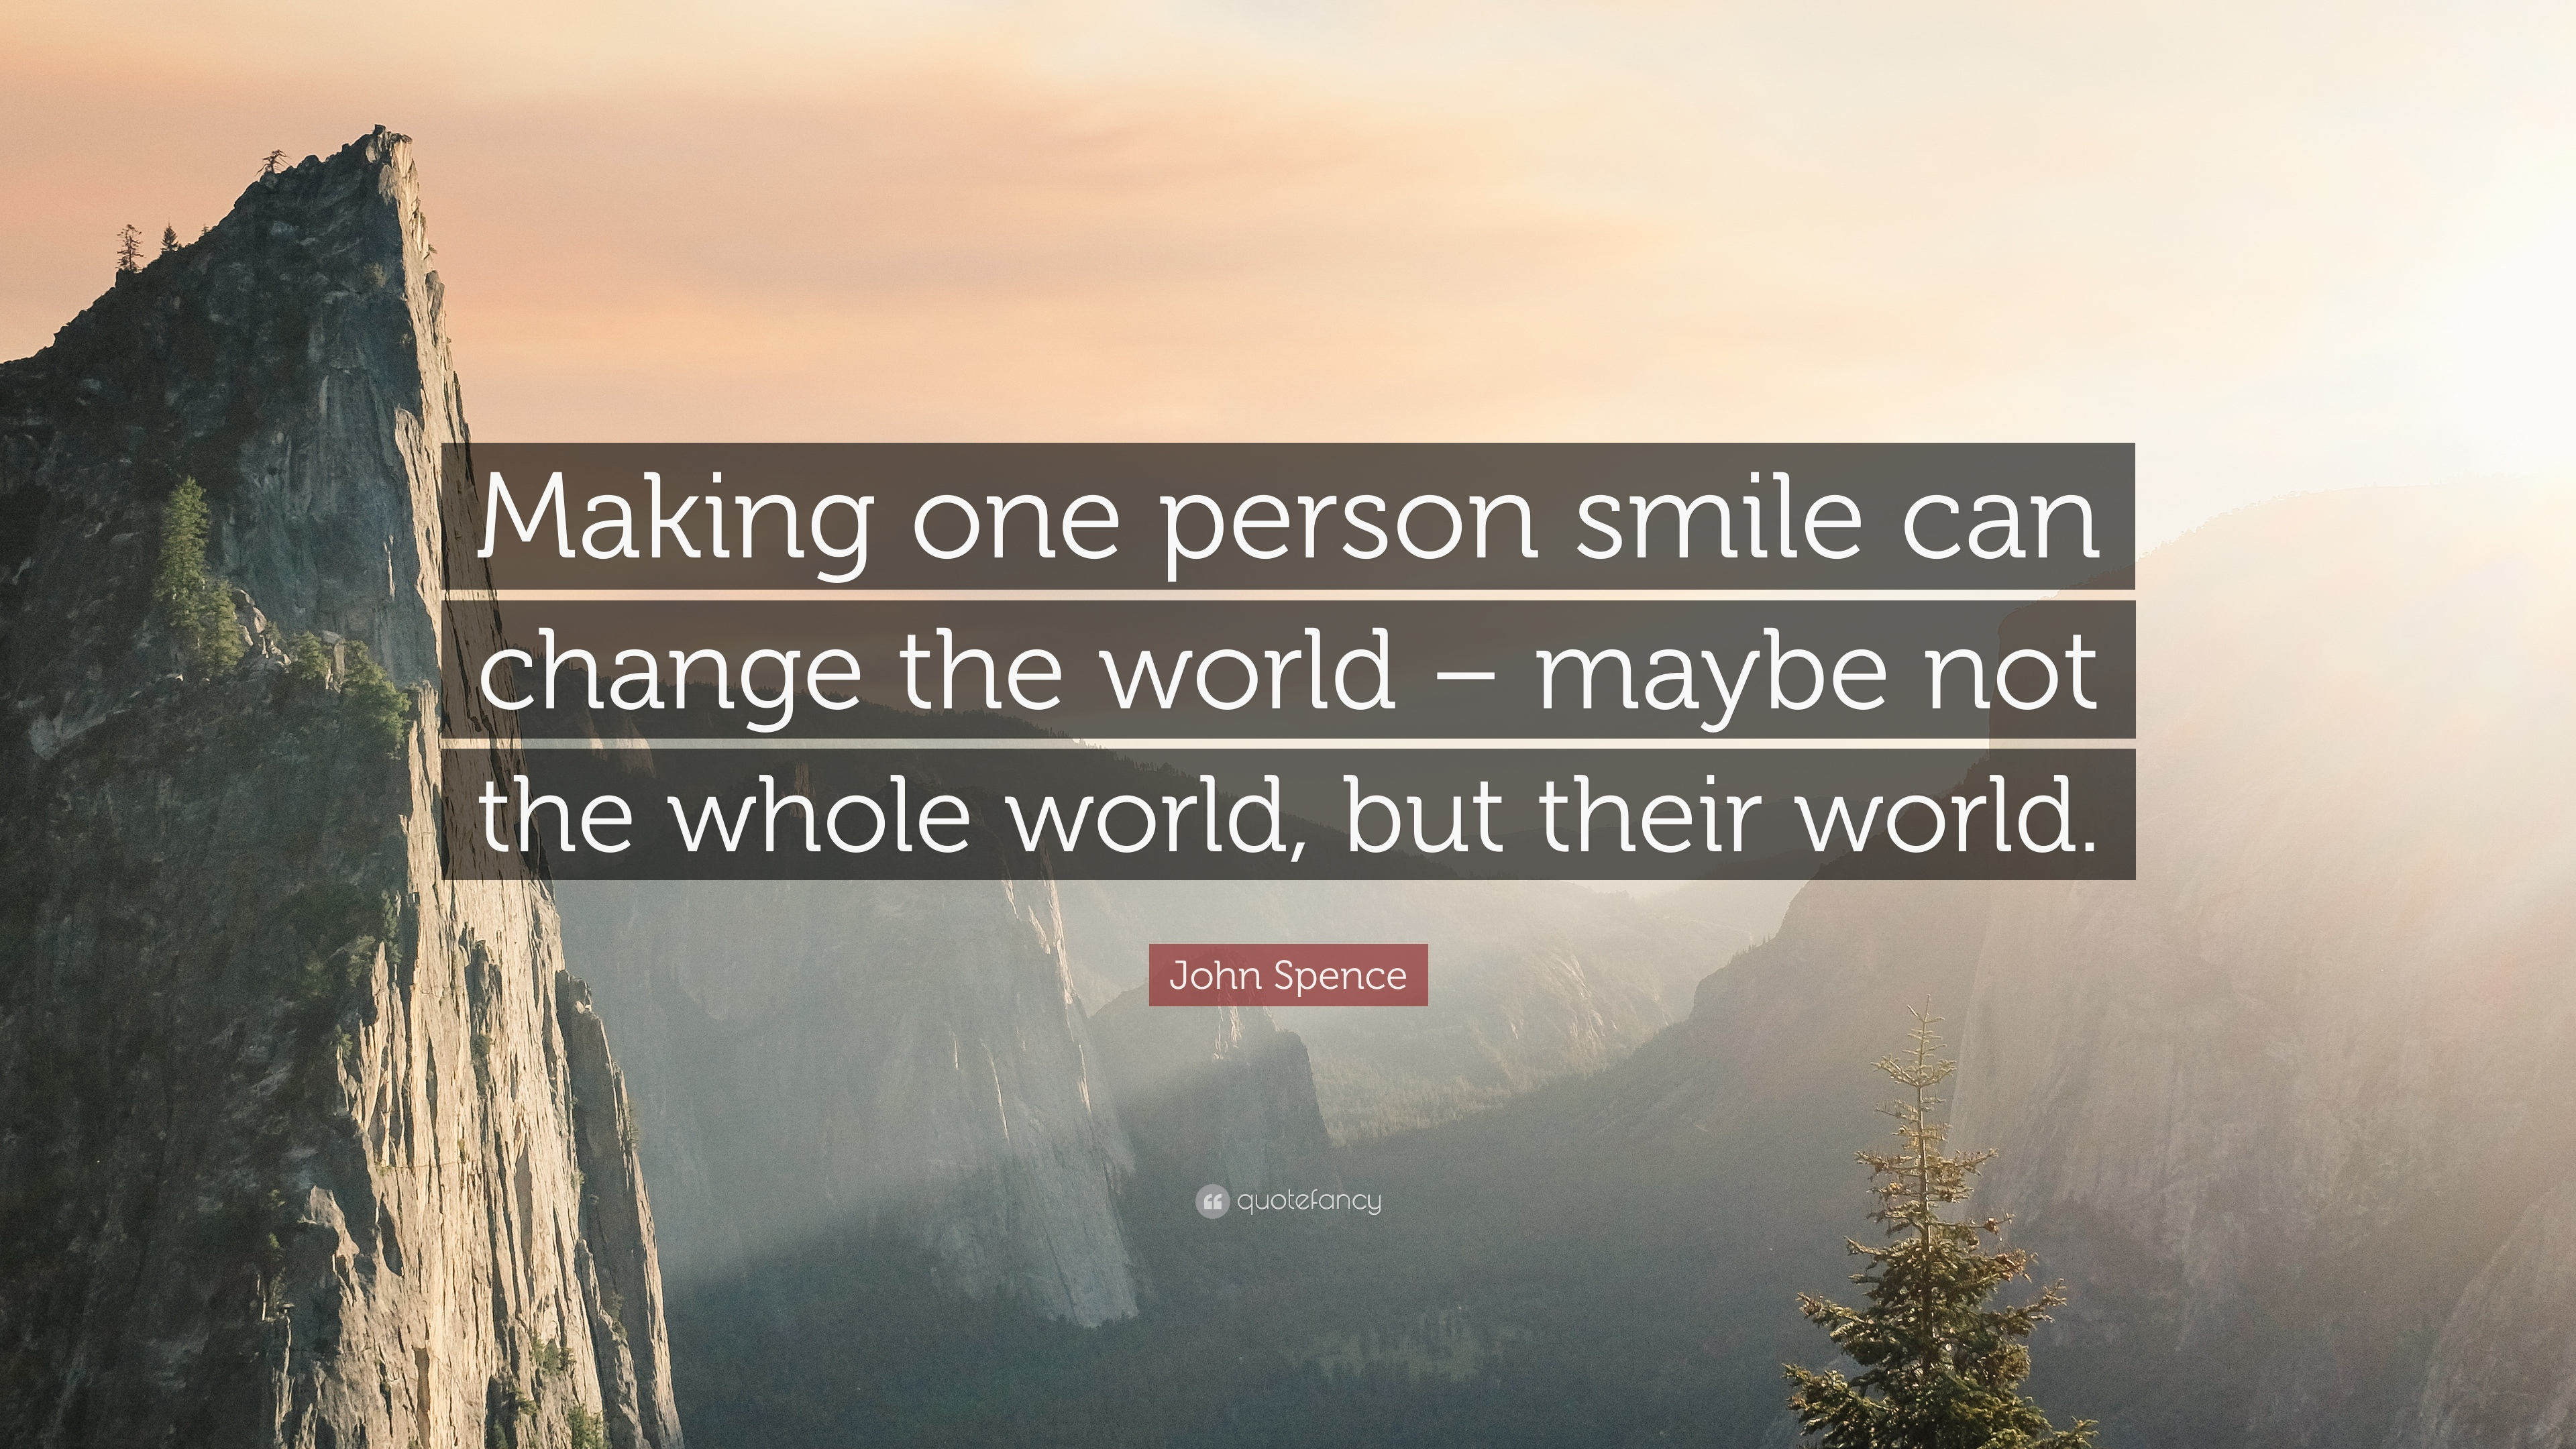 John Spence Quote: Making one person smile can change the